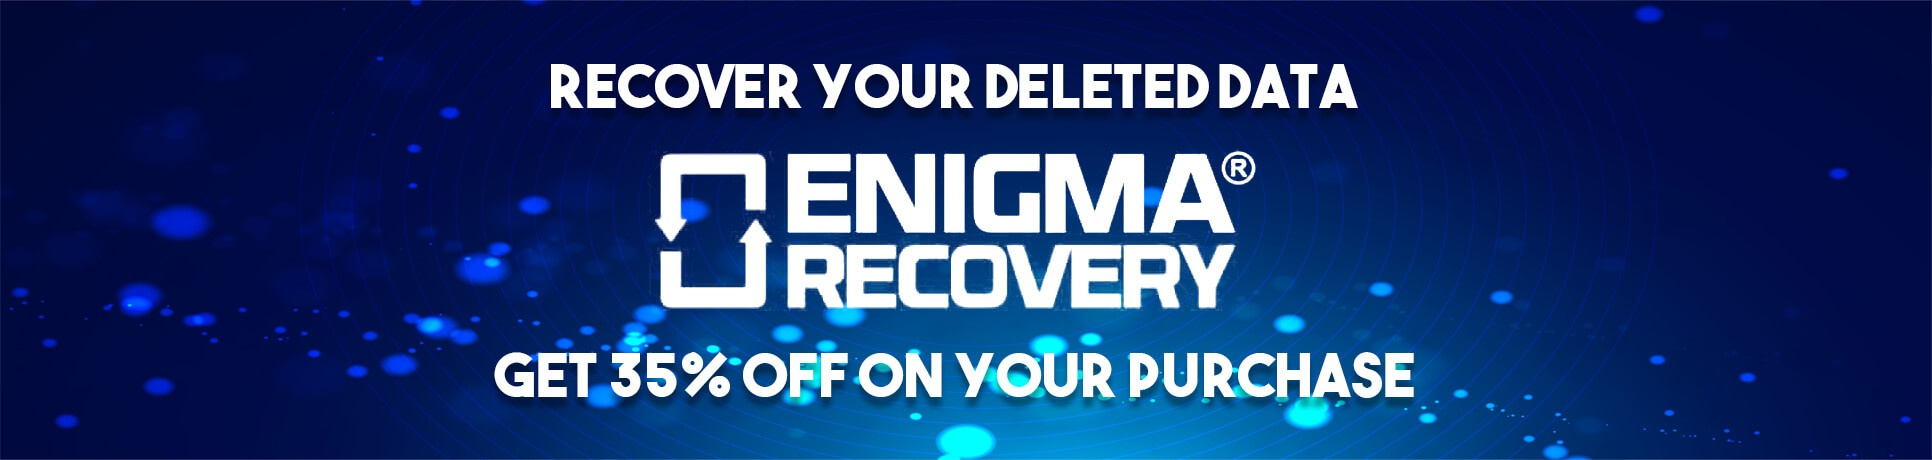 ENIGMA RECOVERY Review